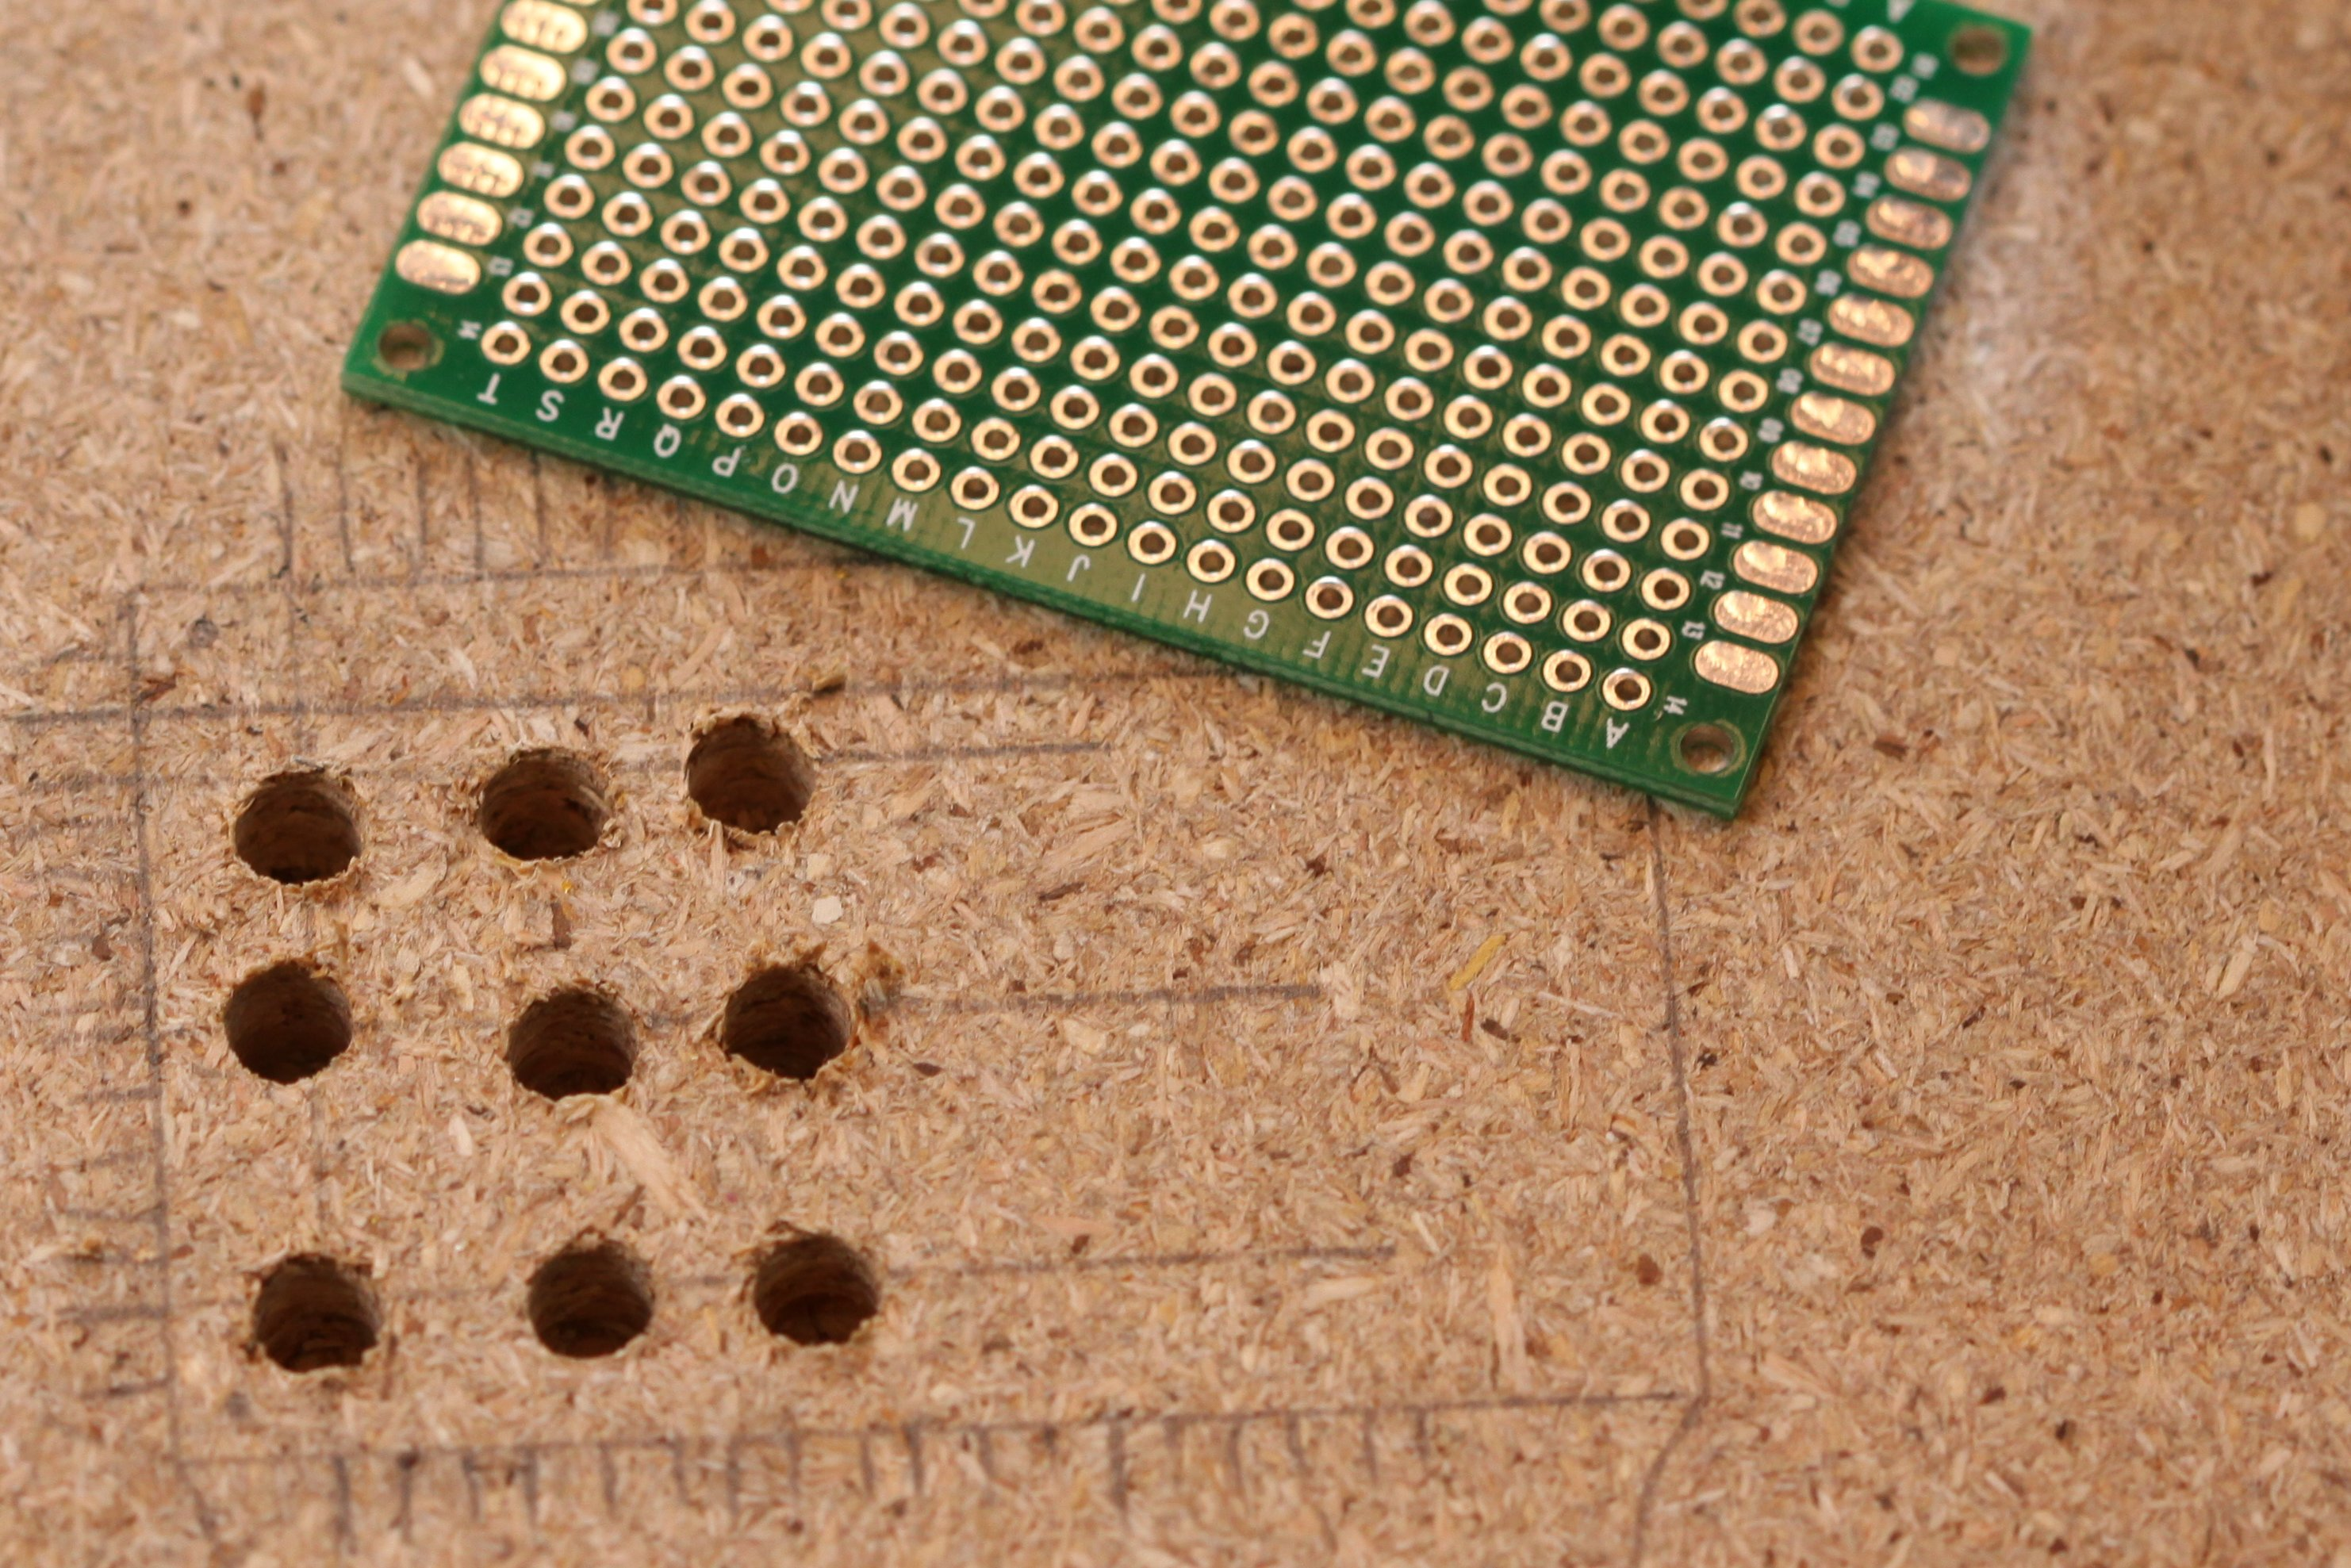 Shift Register Freedom Electronics And Tech Breadboard Circuit The Small With Also Contains A 100 Ohm Resistor For Each Pin Including Output